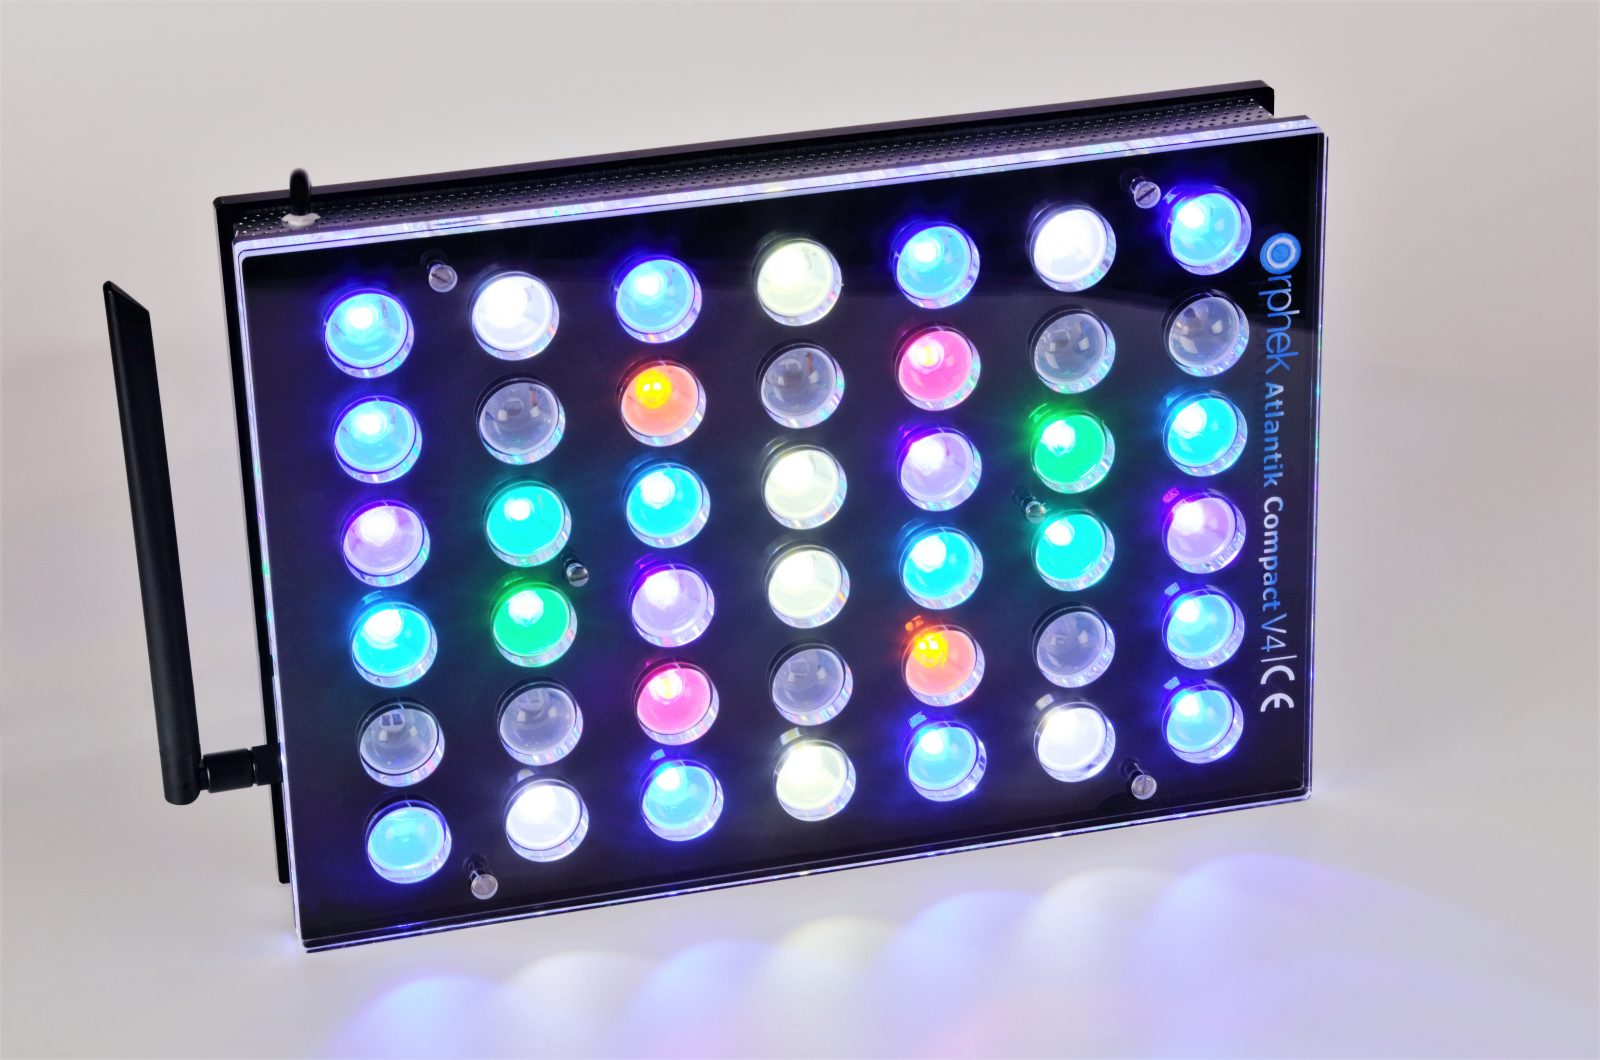 Orphek Aquarium LED Lighting Atlantik Compact V4 light on channel 1 + 2 + 4